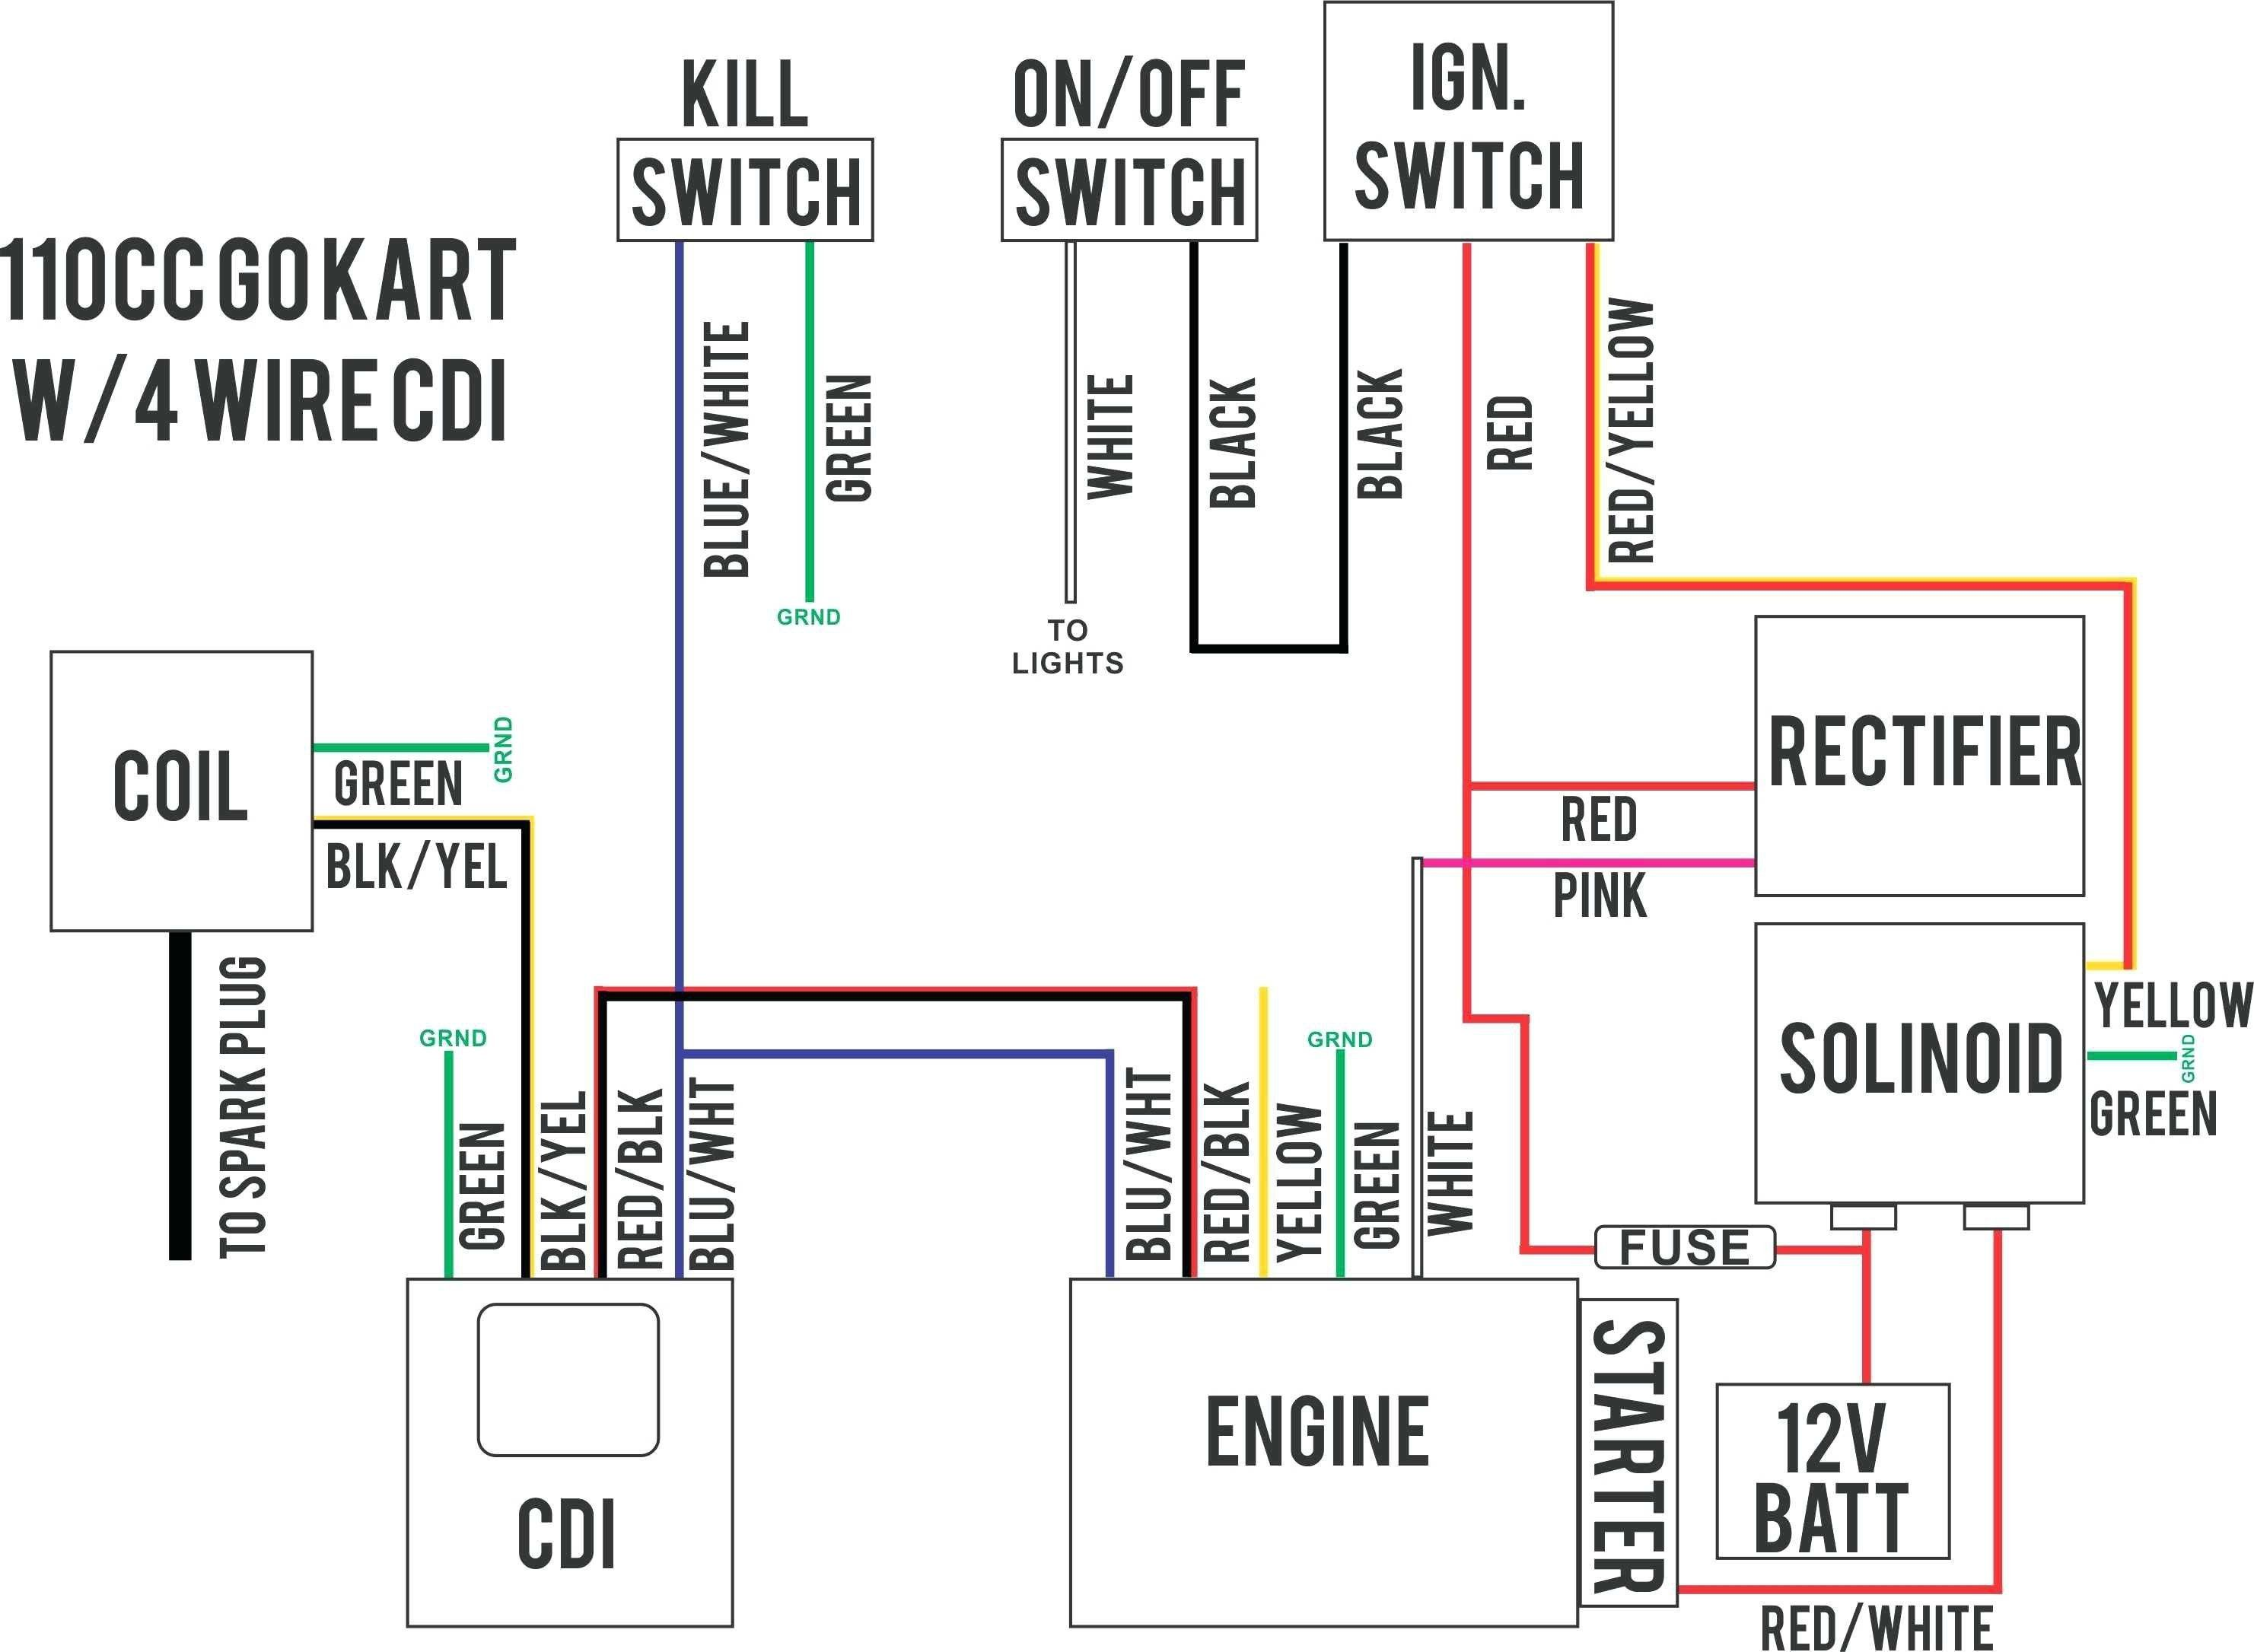 New 6 Wire Cdi Wiring Diagram Electrical Wiring Diagram Motorcycle Wiring Electrical Diagram